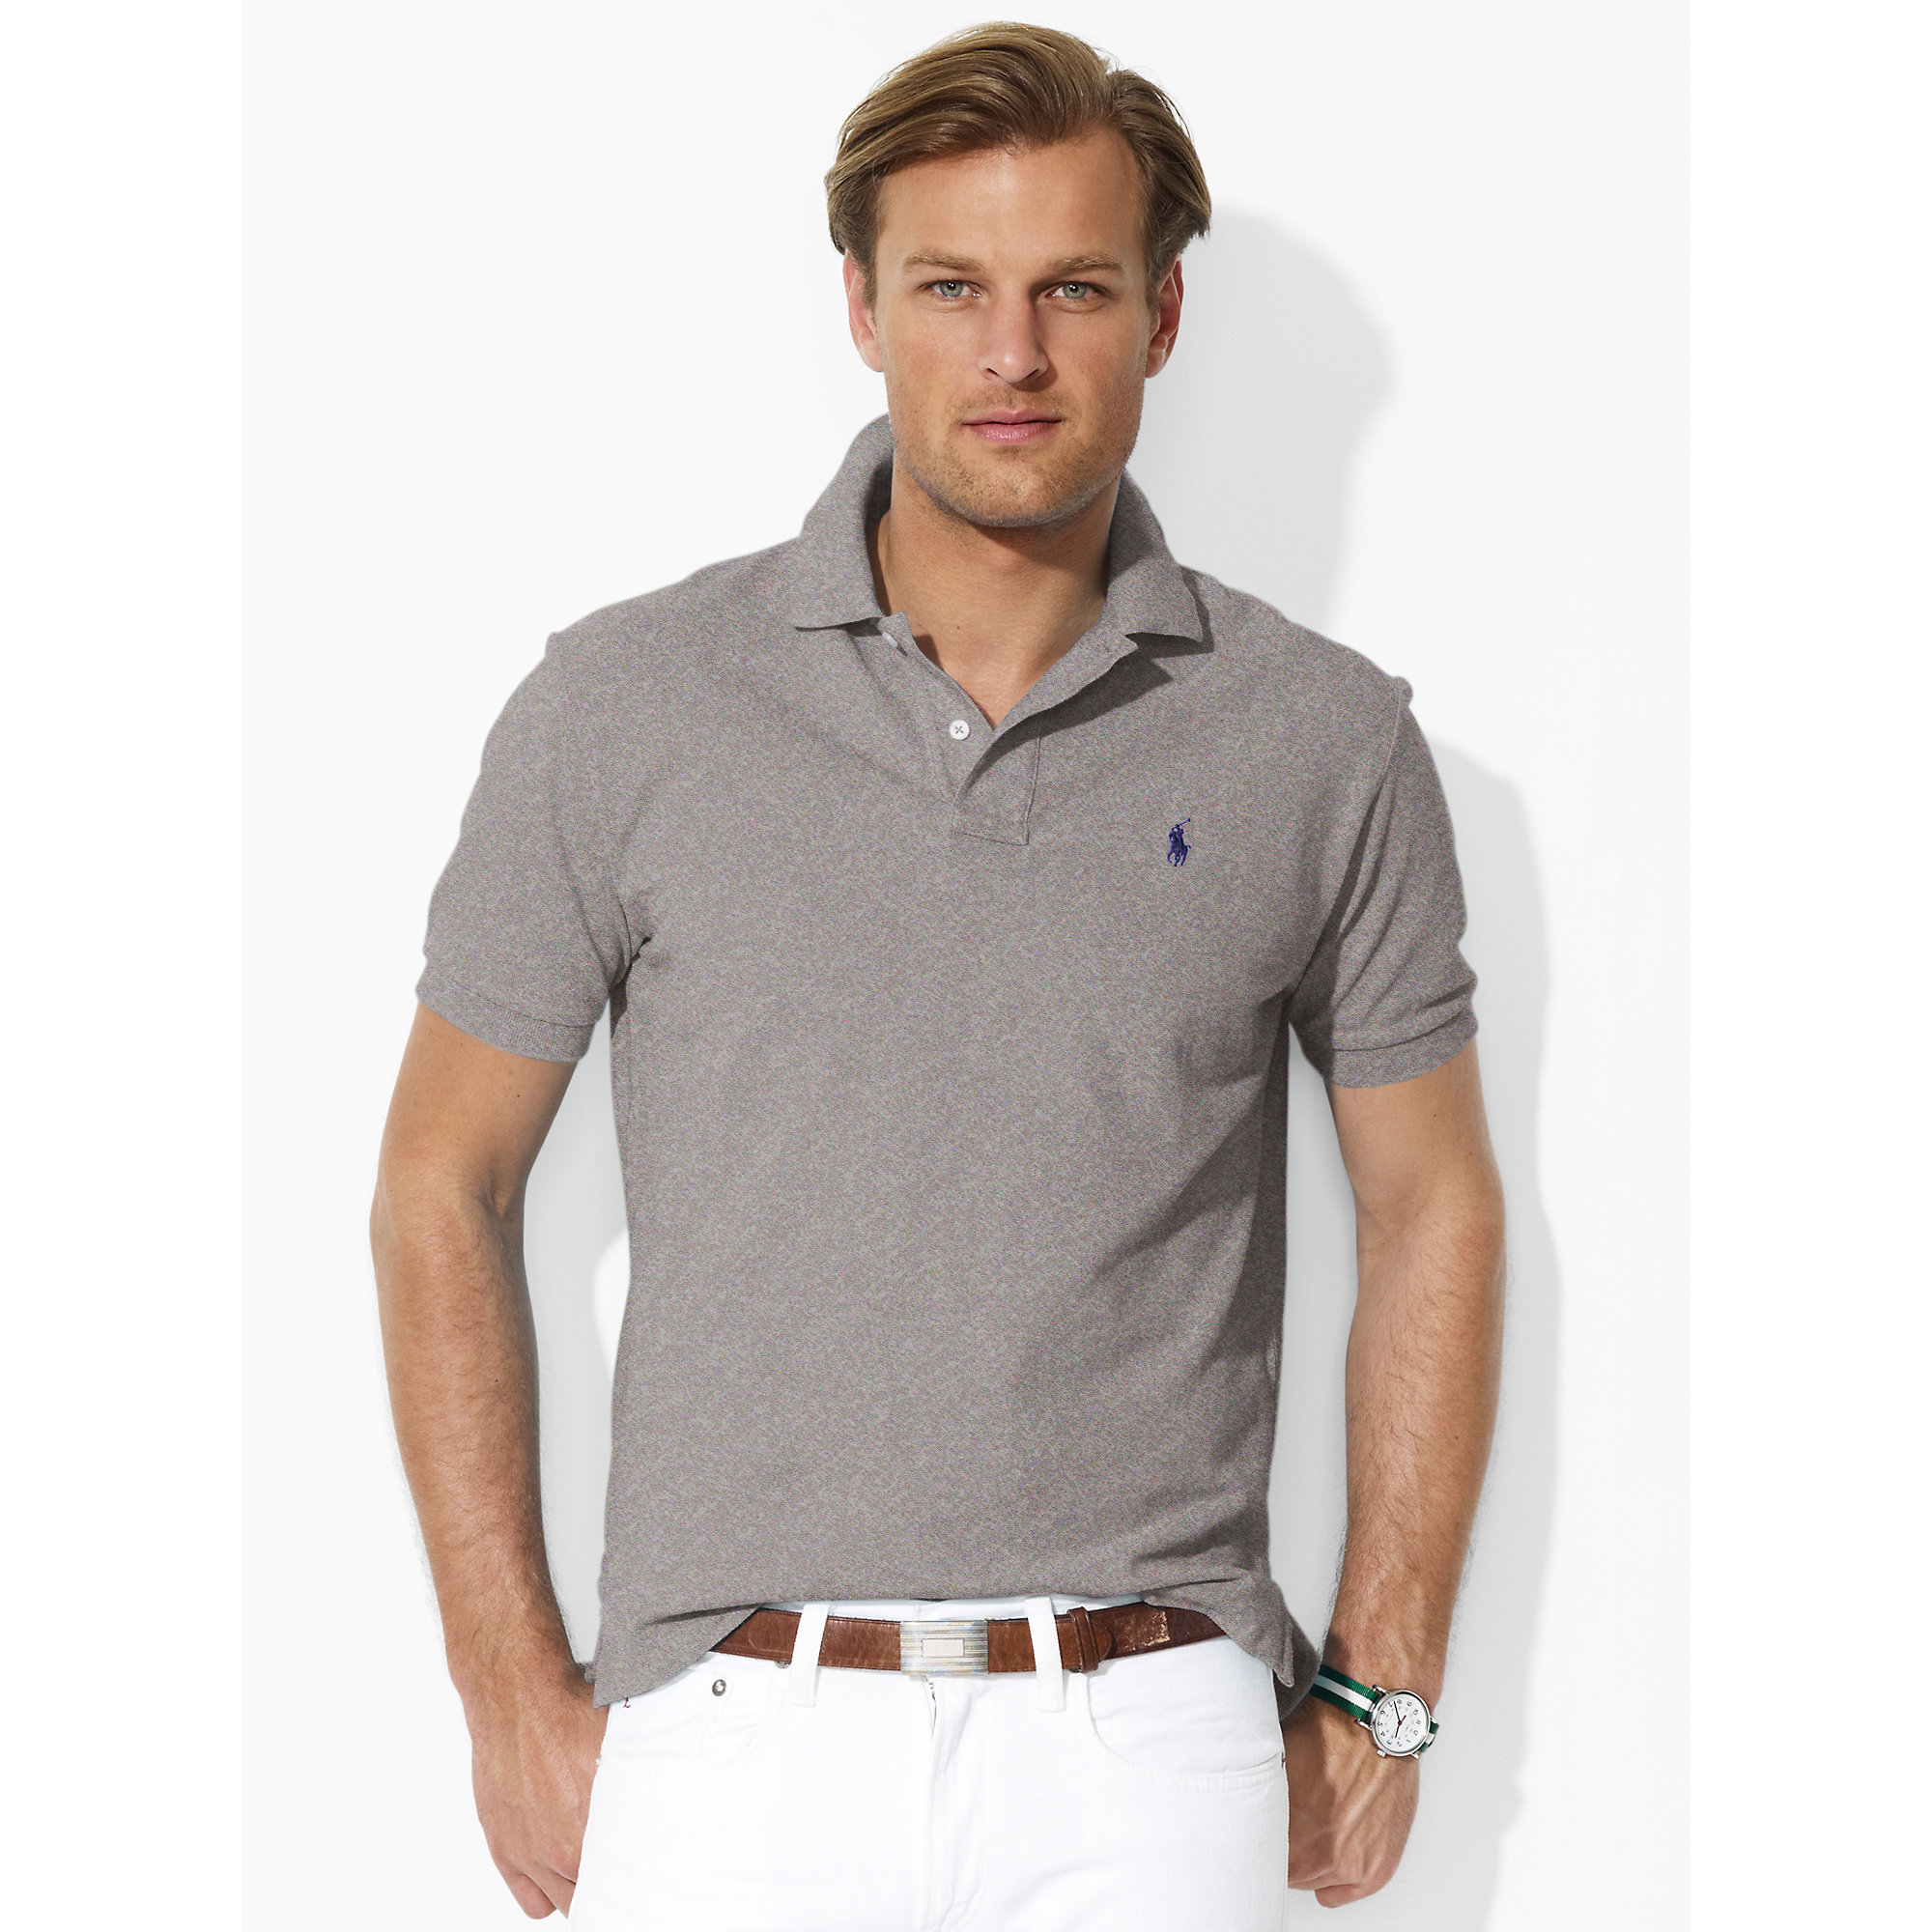 ca67212c Polo Ralph Lauren Classic-fit Mesh Polo in Gray for Men - Lyst